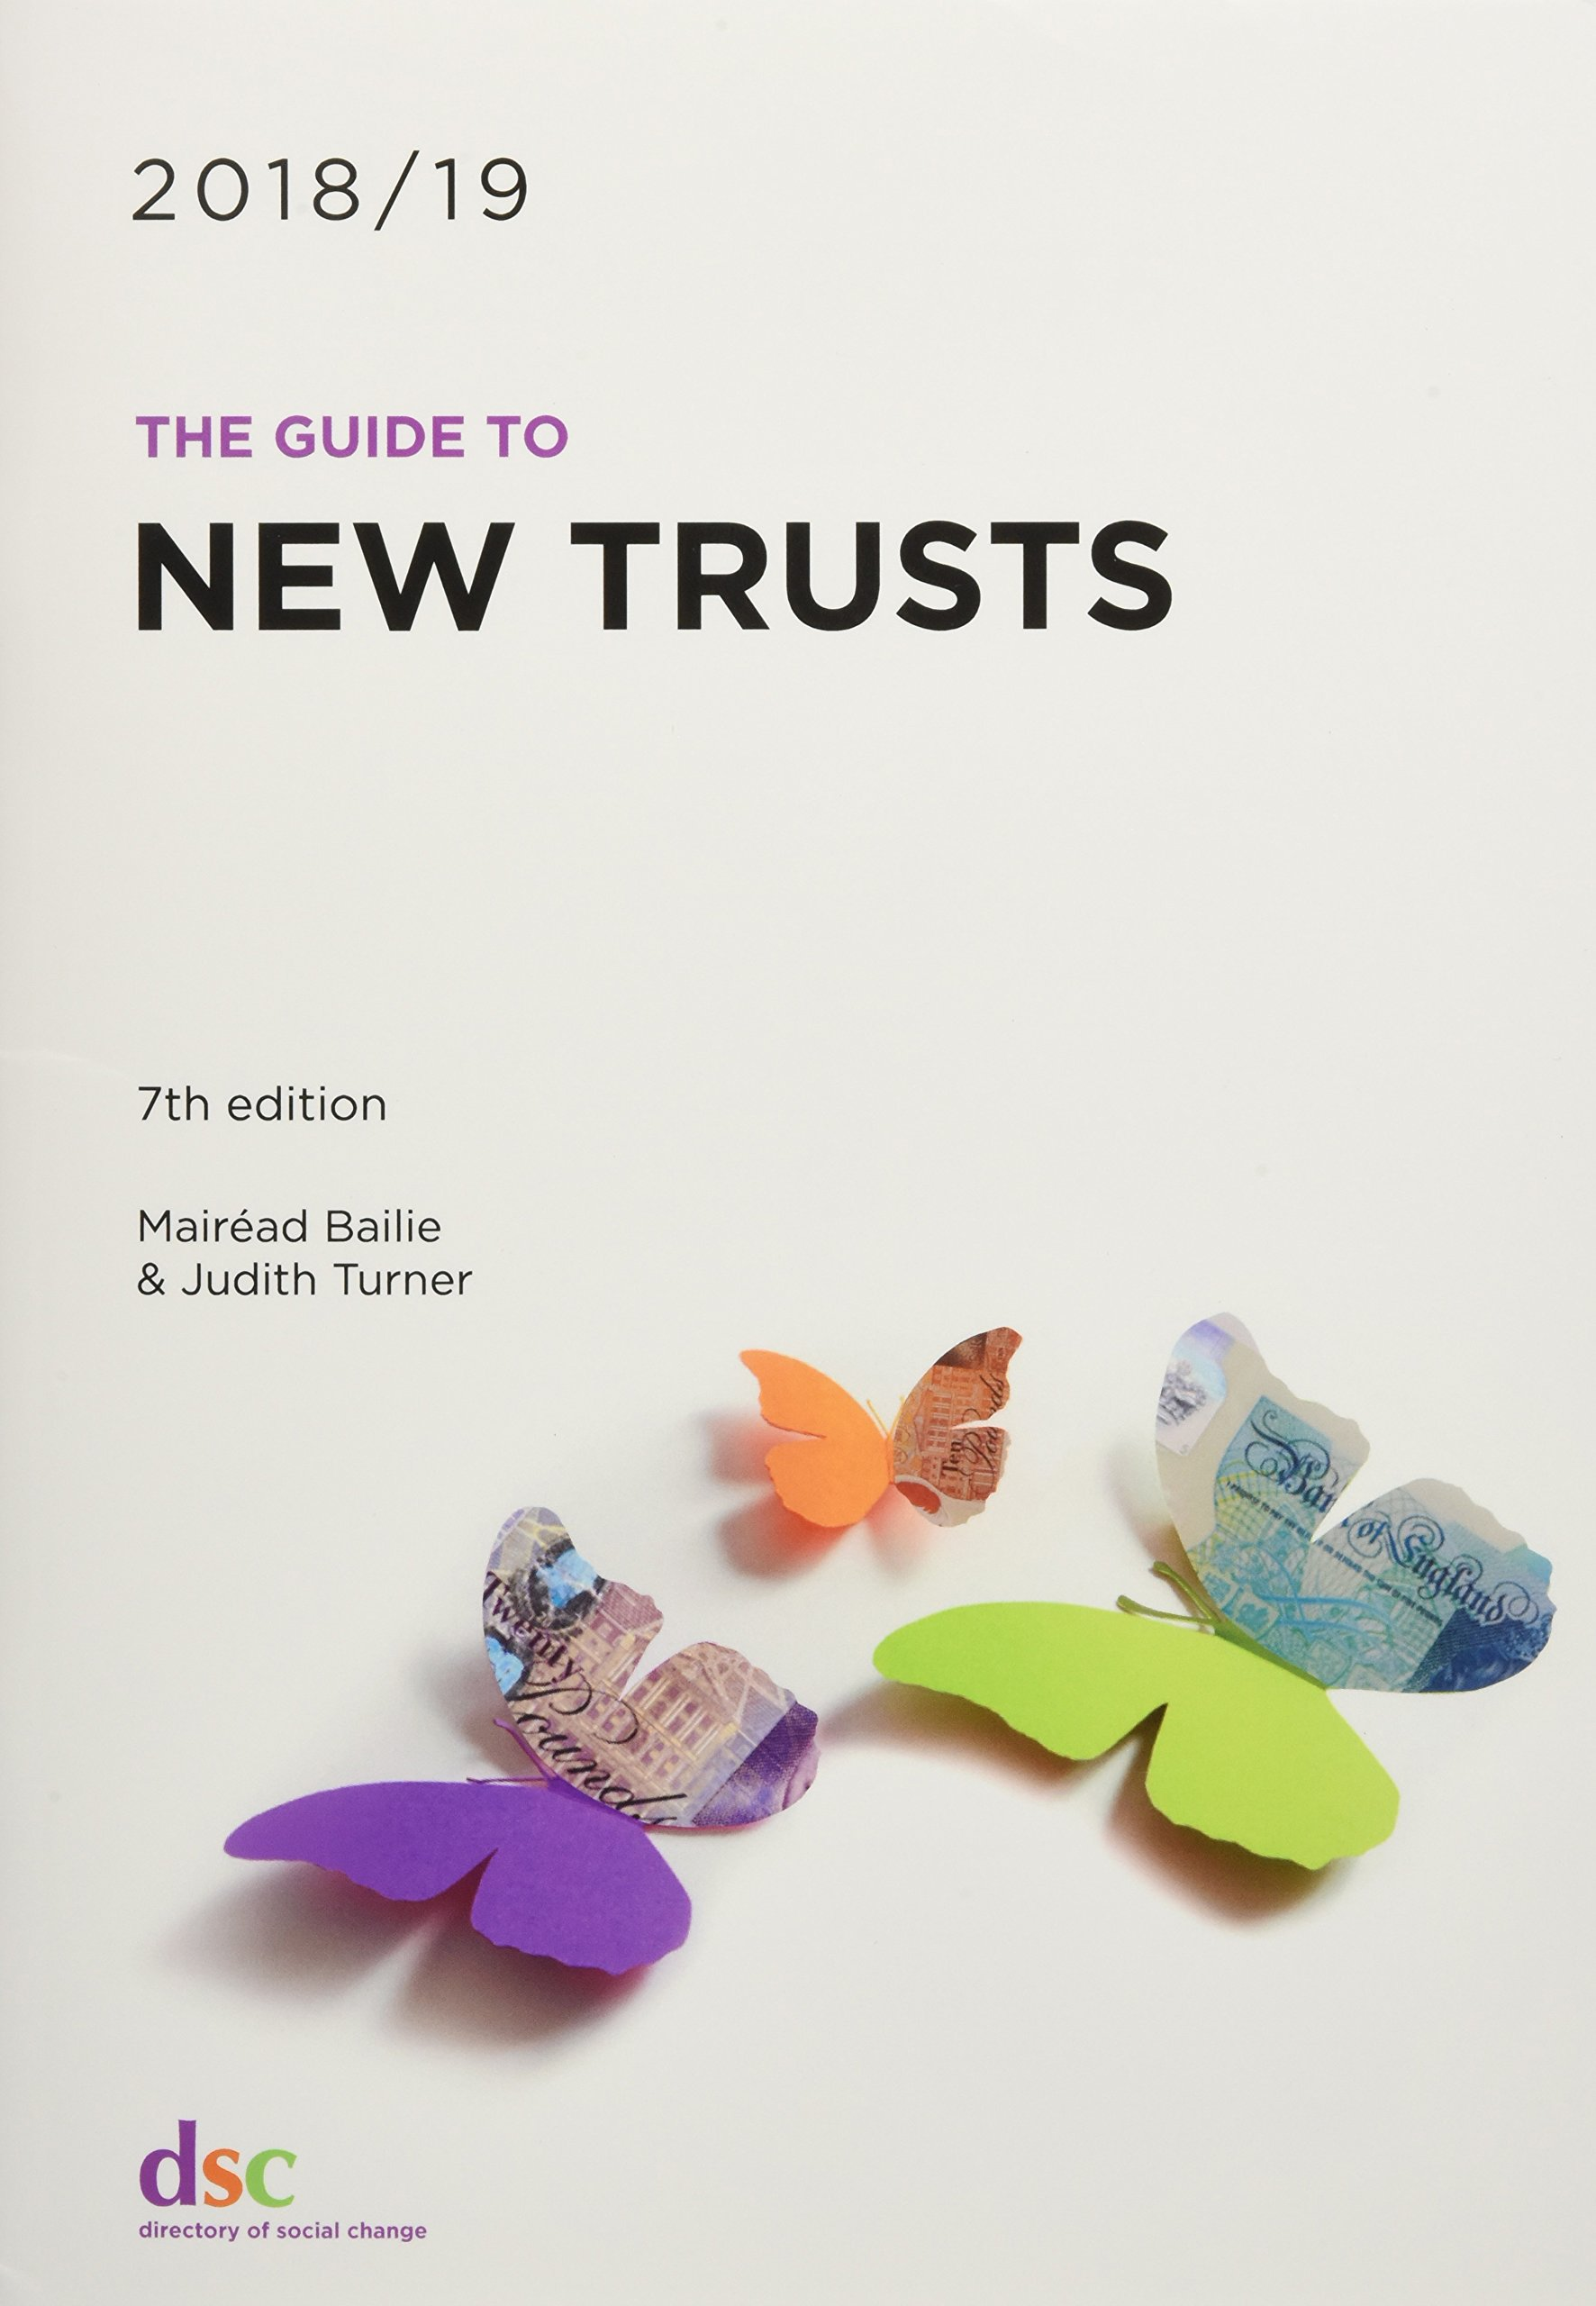 The Guide to New Trusts 2018/19 Paperback – 18 Jun 2018 Research Team Directory of Social Change 1784820512 Social Issues